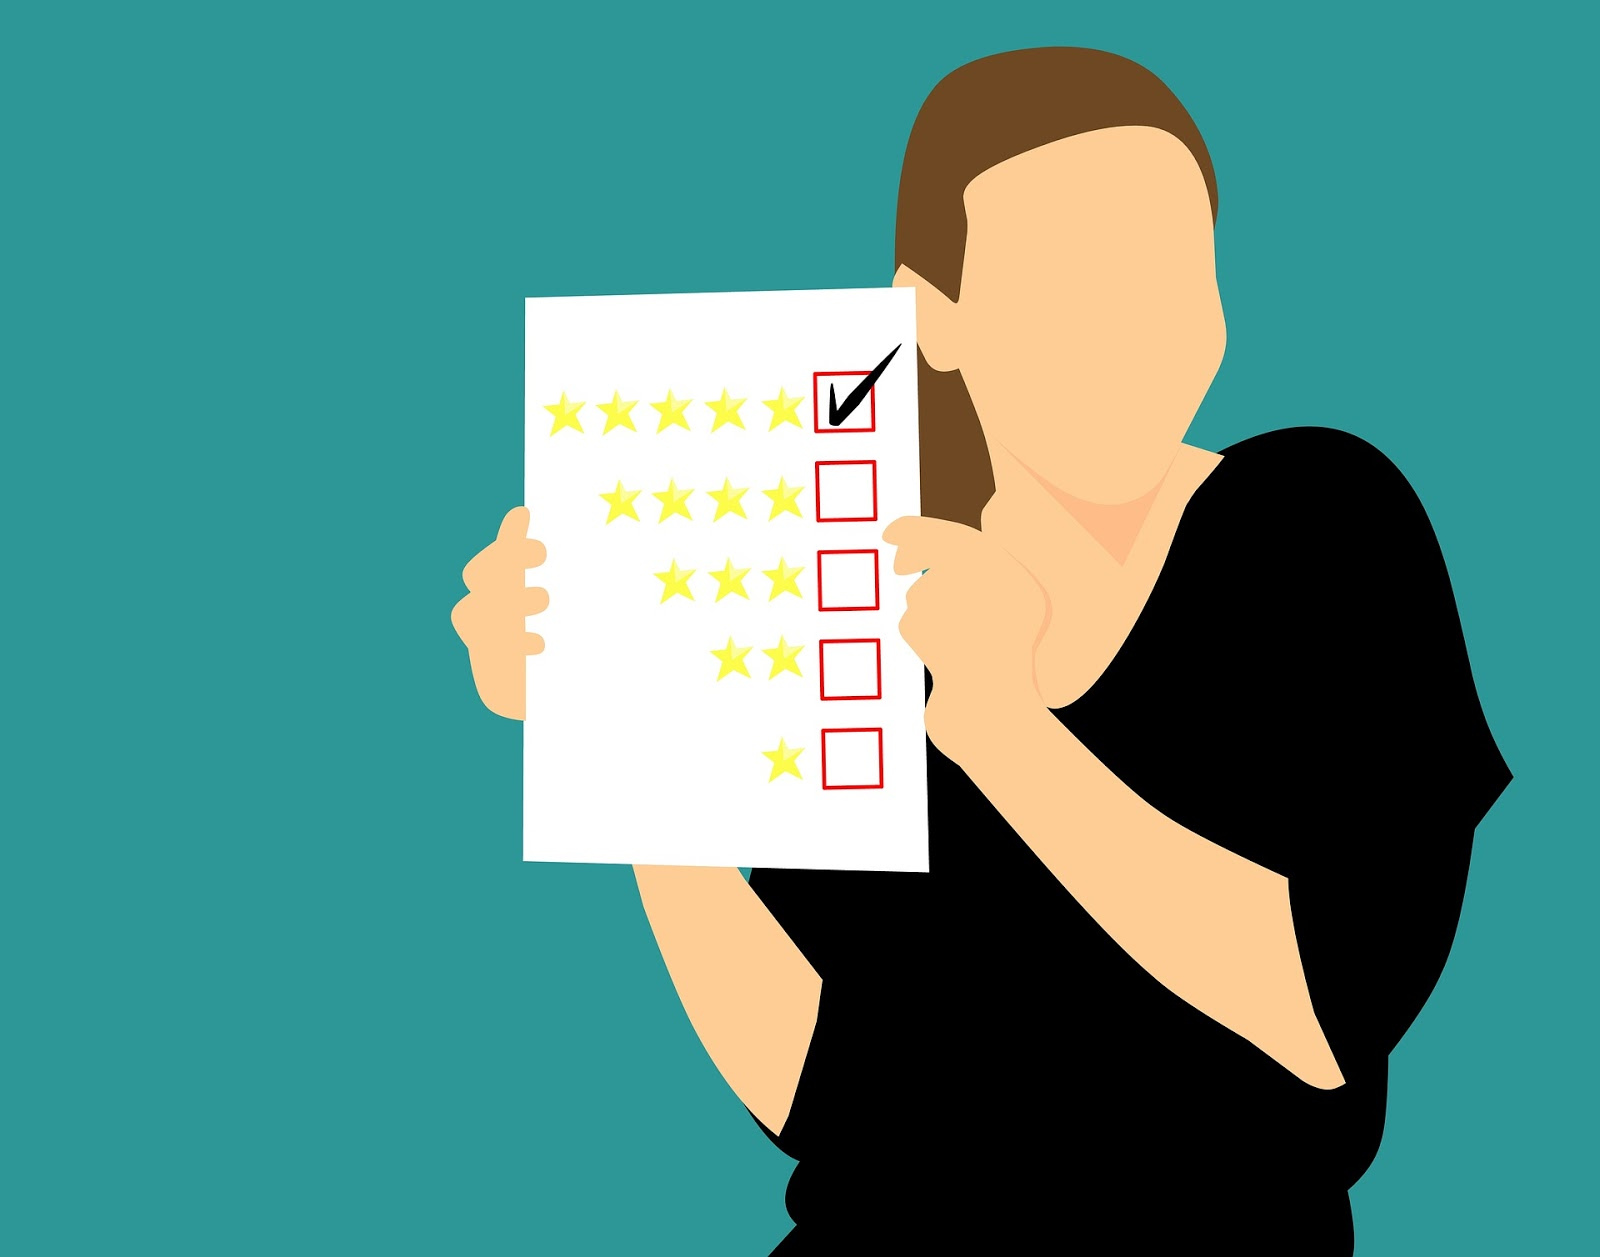 Five star customer feedback woman